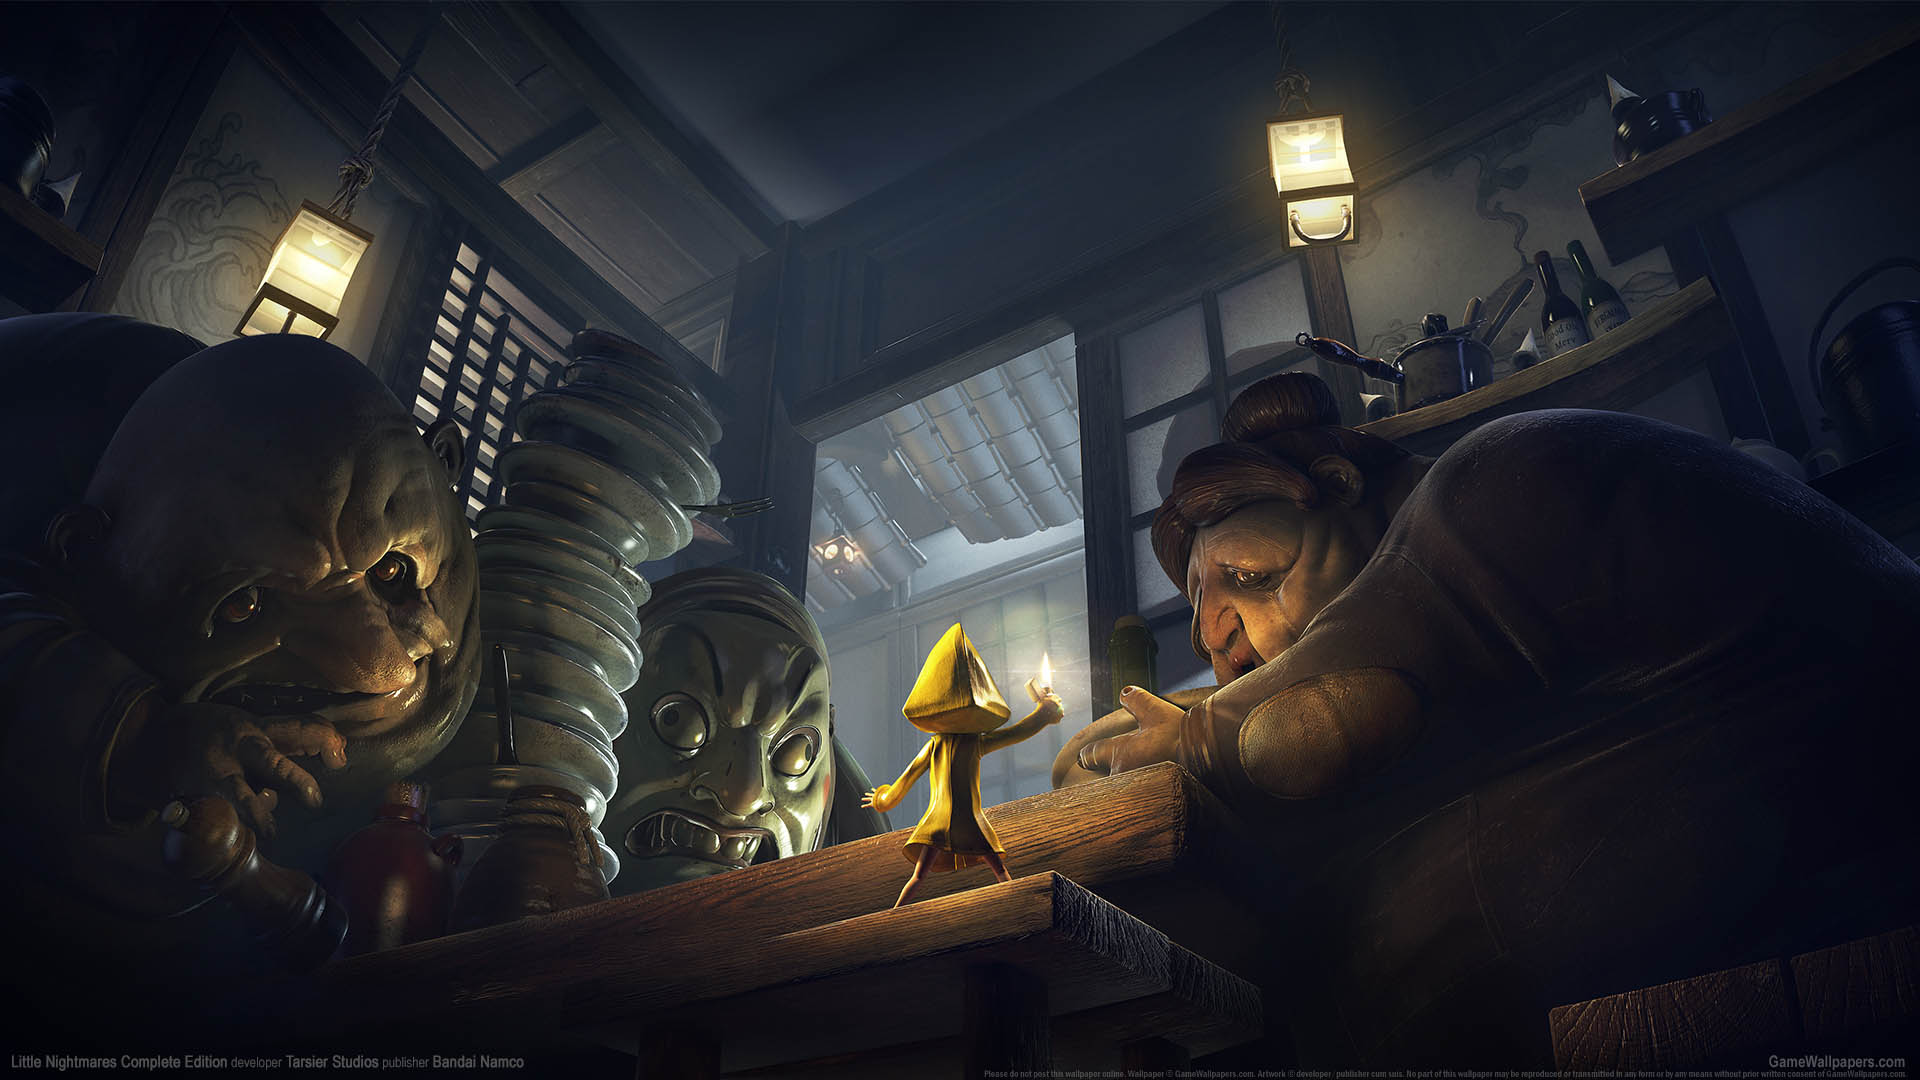 Little Nightmares Complete Edition fondo de escritorio 01 1920x1080